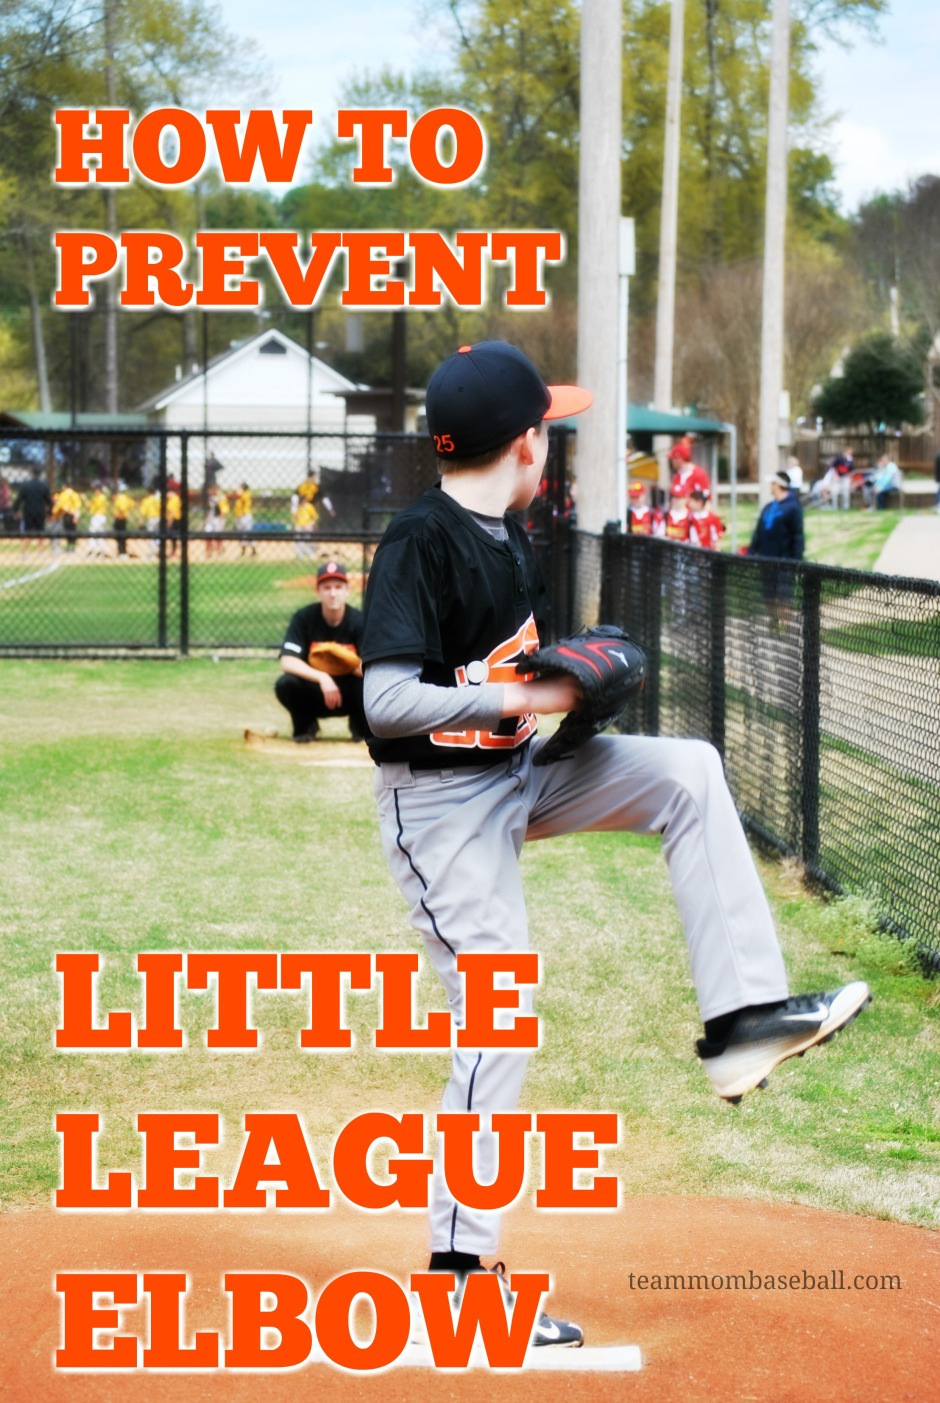 How to Prevent LLE